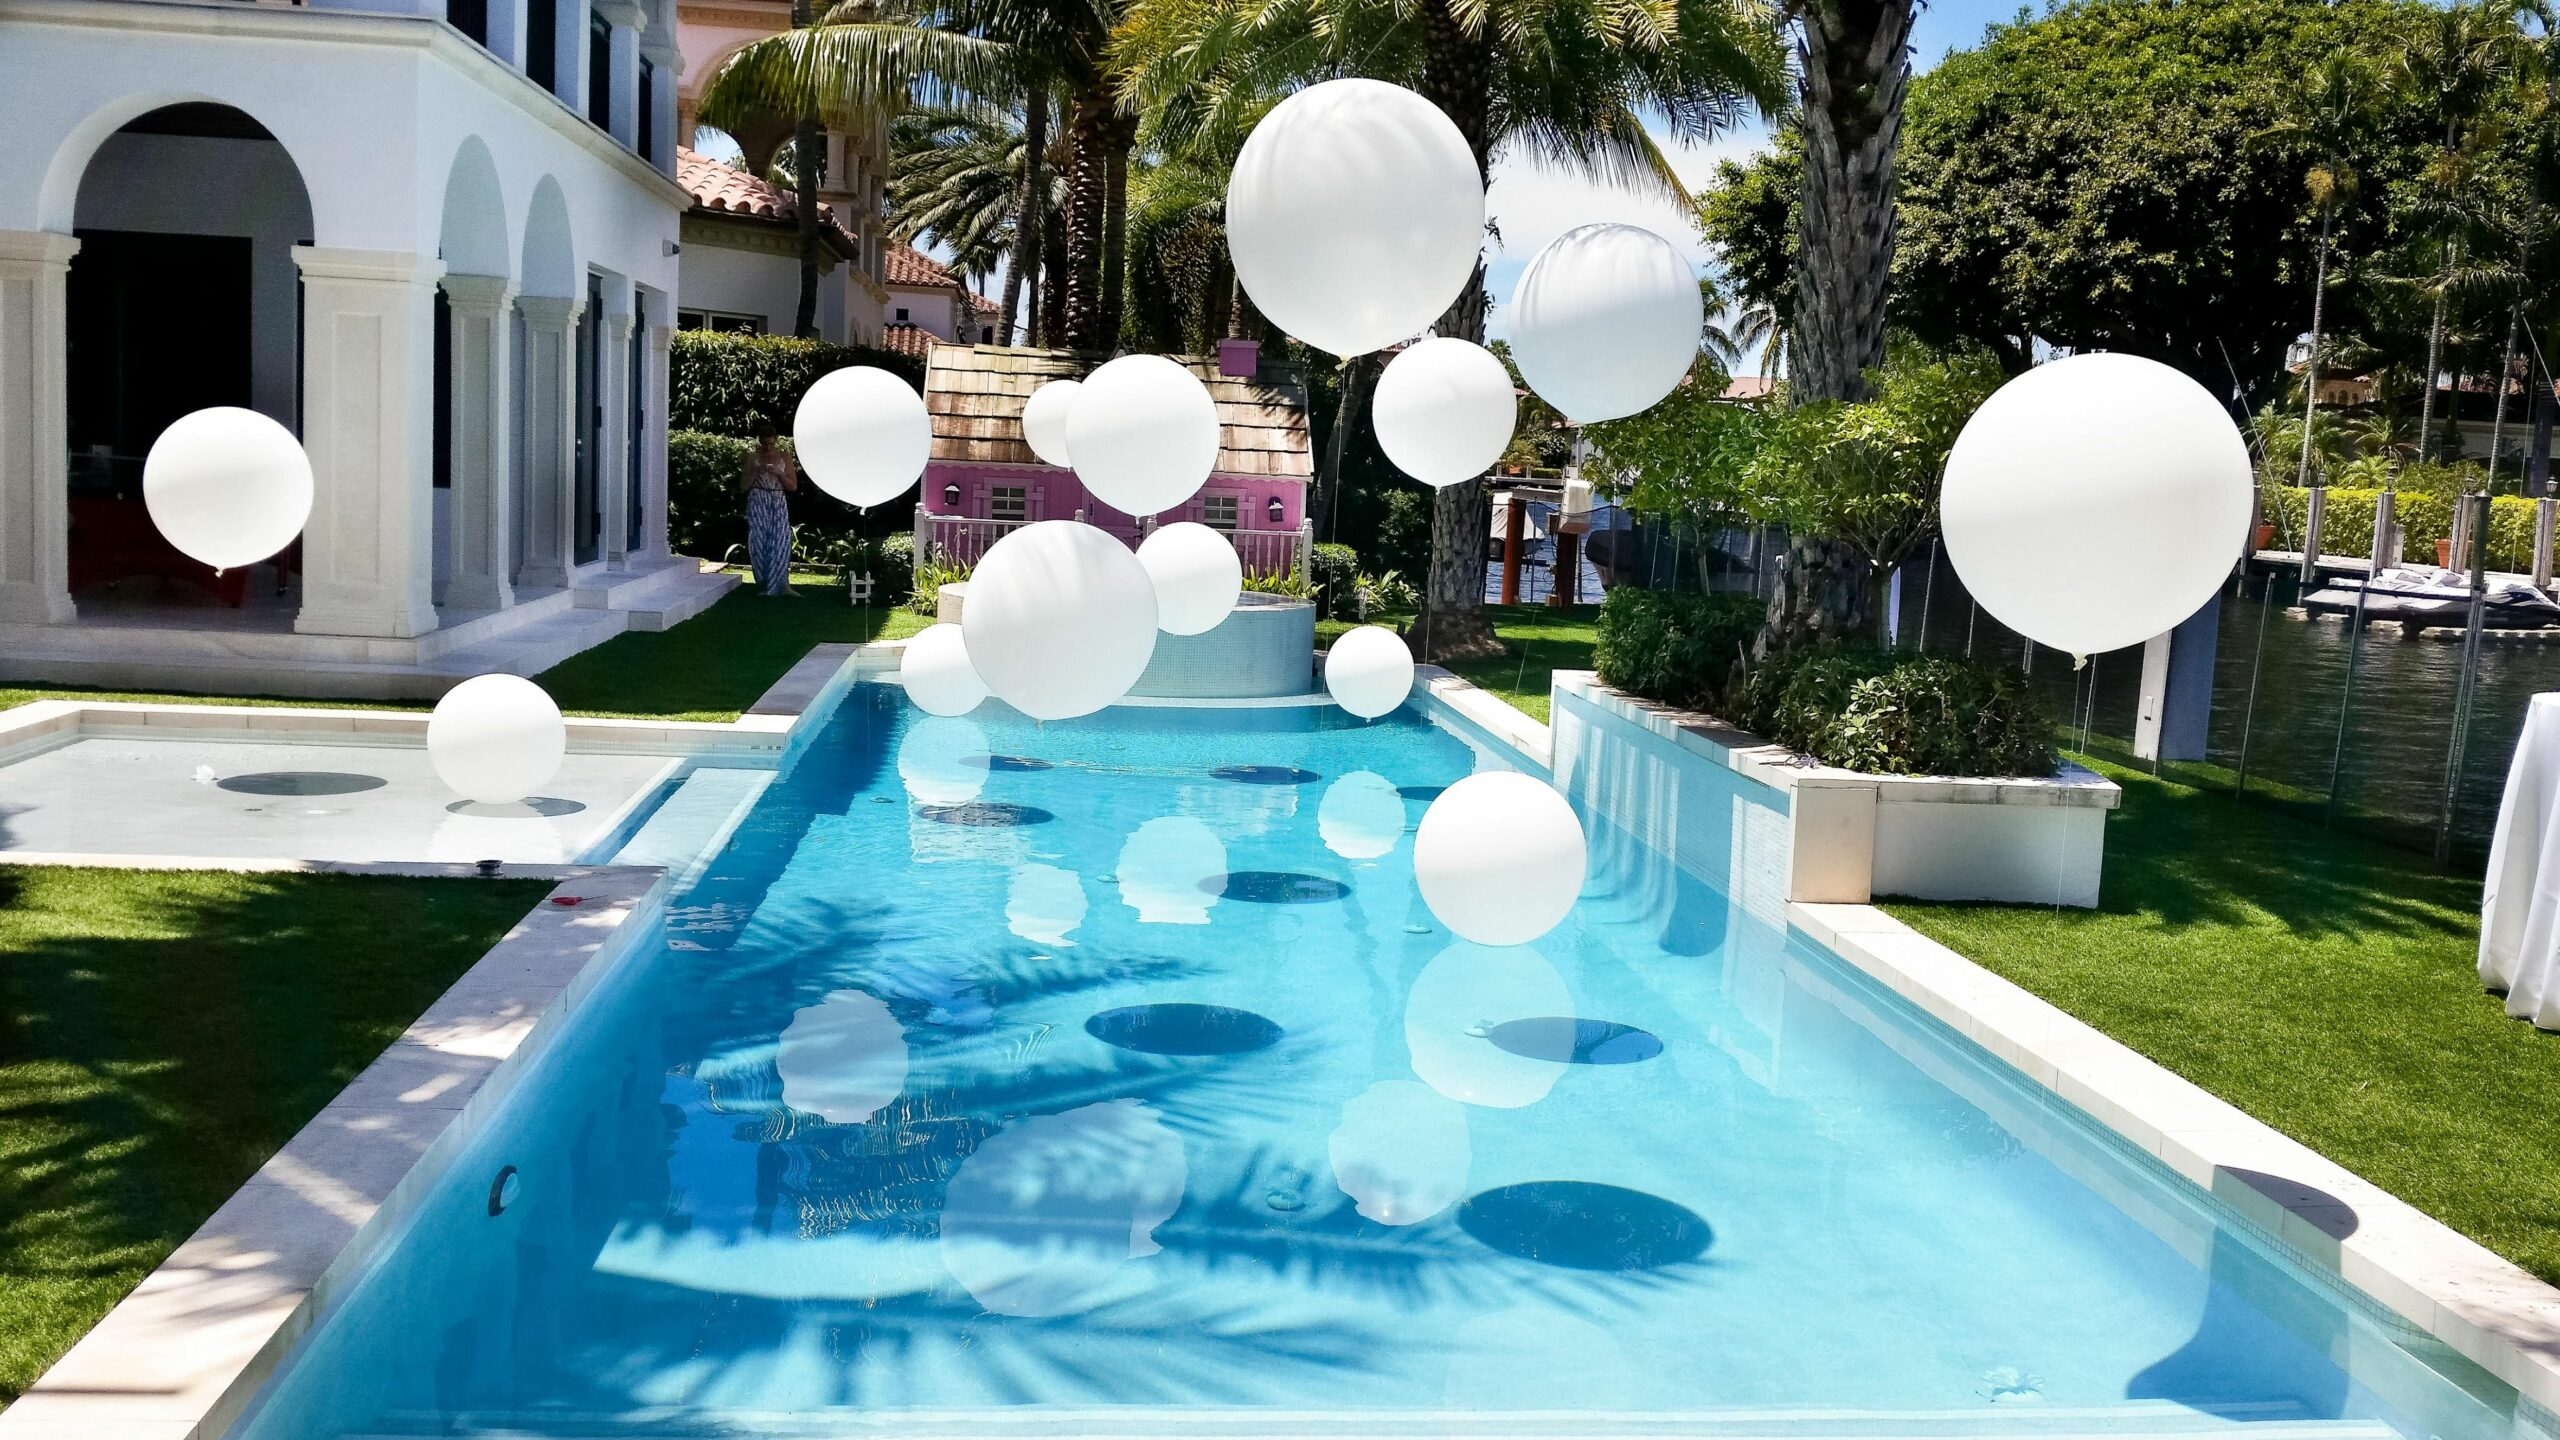 Gold and white | Backyard party decorations, Swimming pool wedding ...